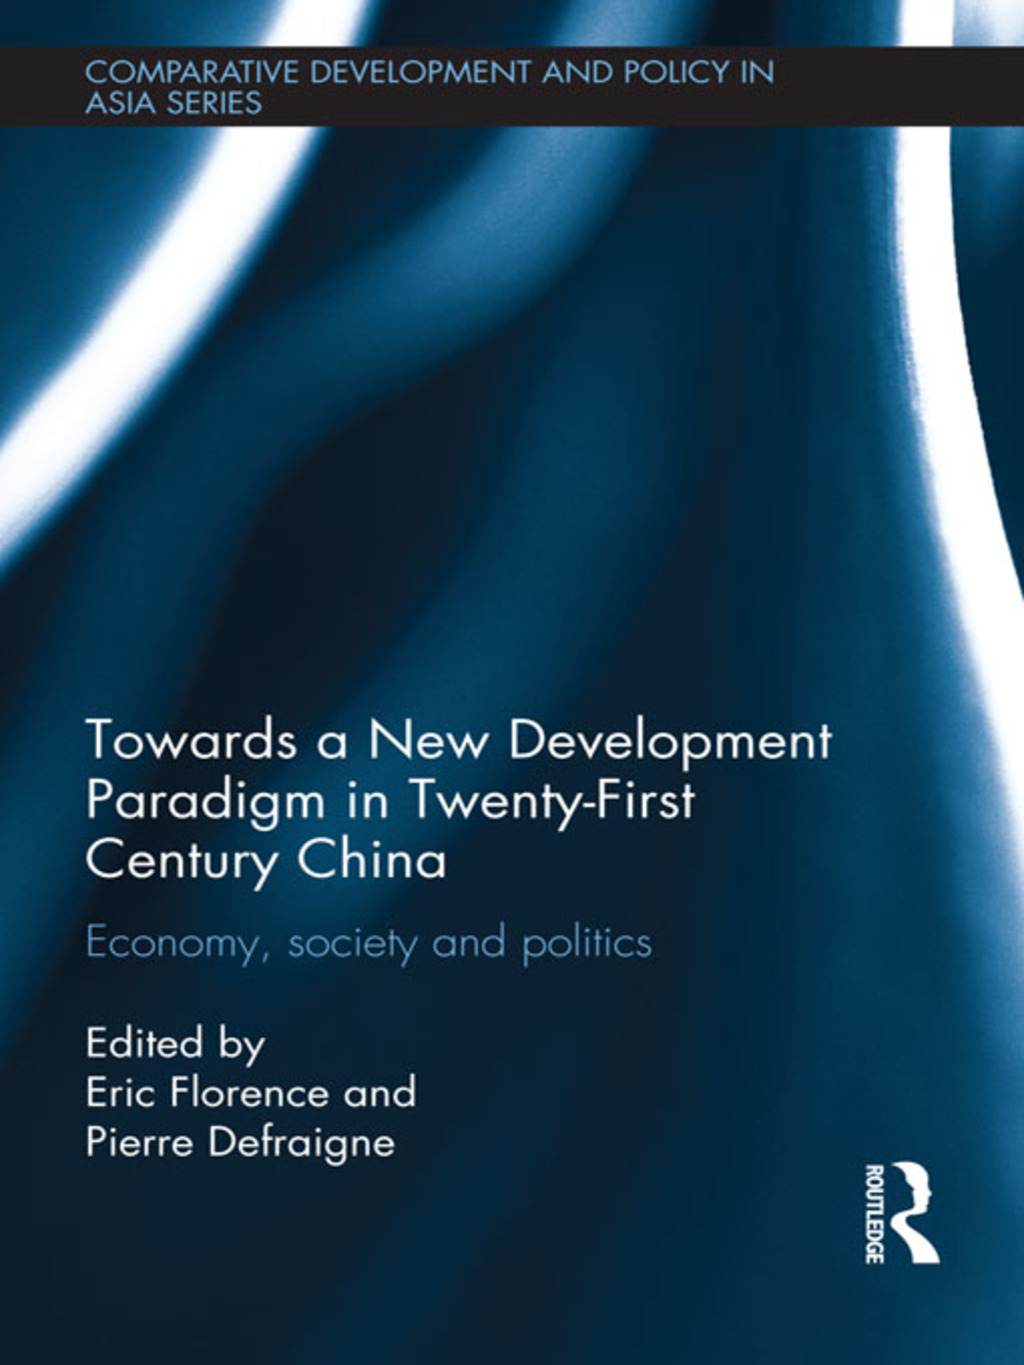 Towards a New Development Paradigm in Twenty-First Century China (ebook) eBooks